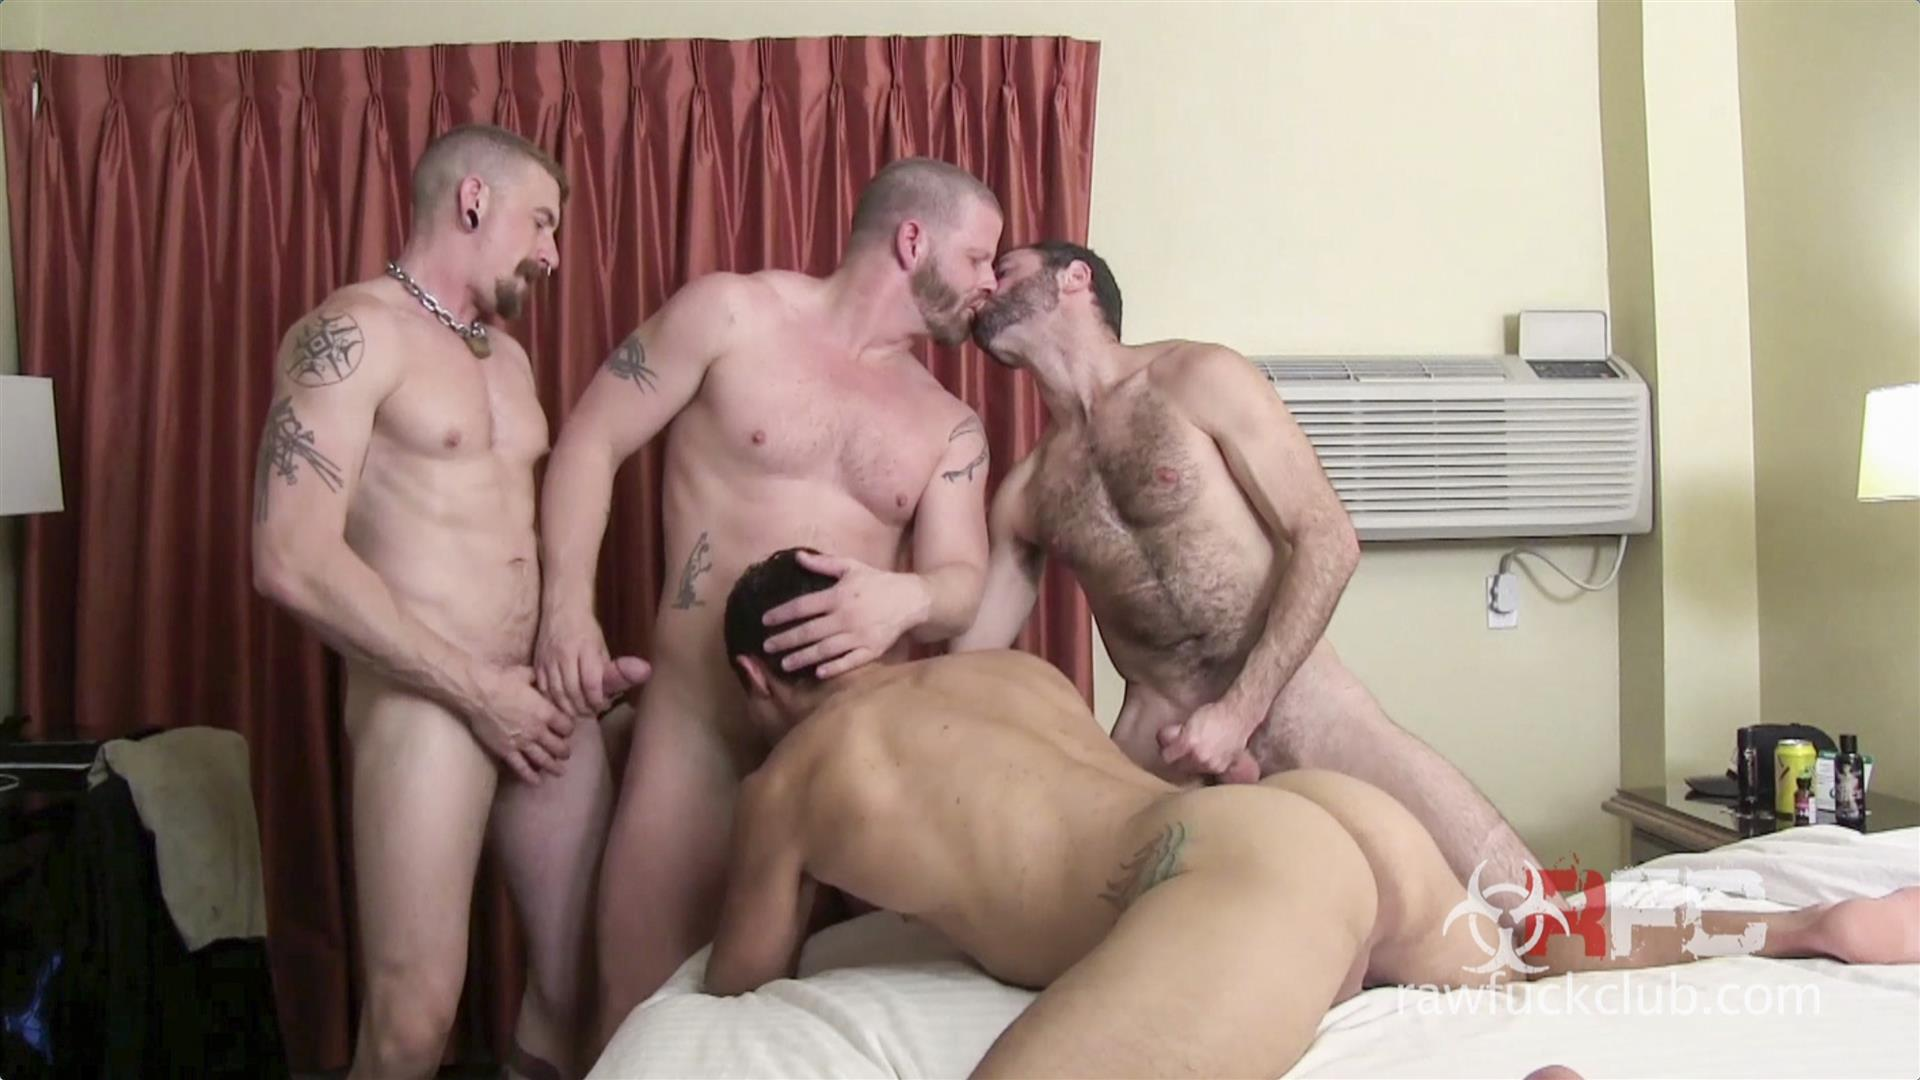 Raw Fuck Club Dylan Saunders and Dusty Williams and Jeff Kendall and Jeremy Stevens BBBH Amateur Gay Porn 10